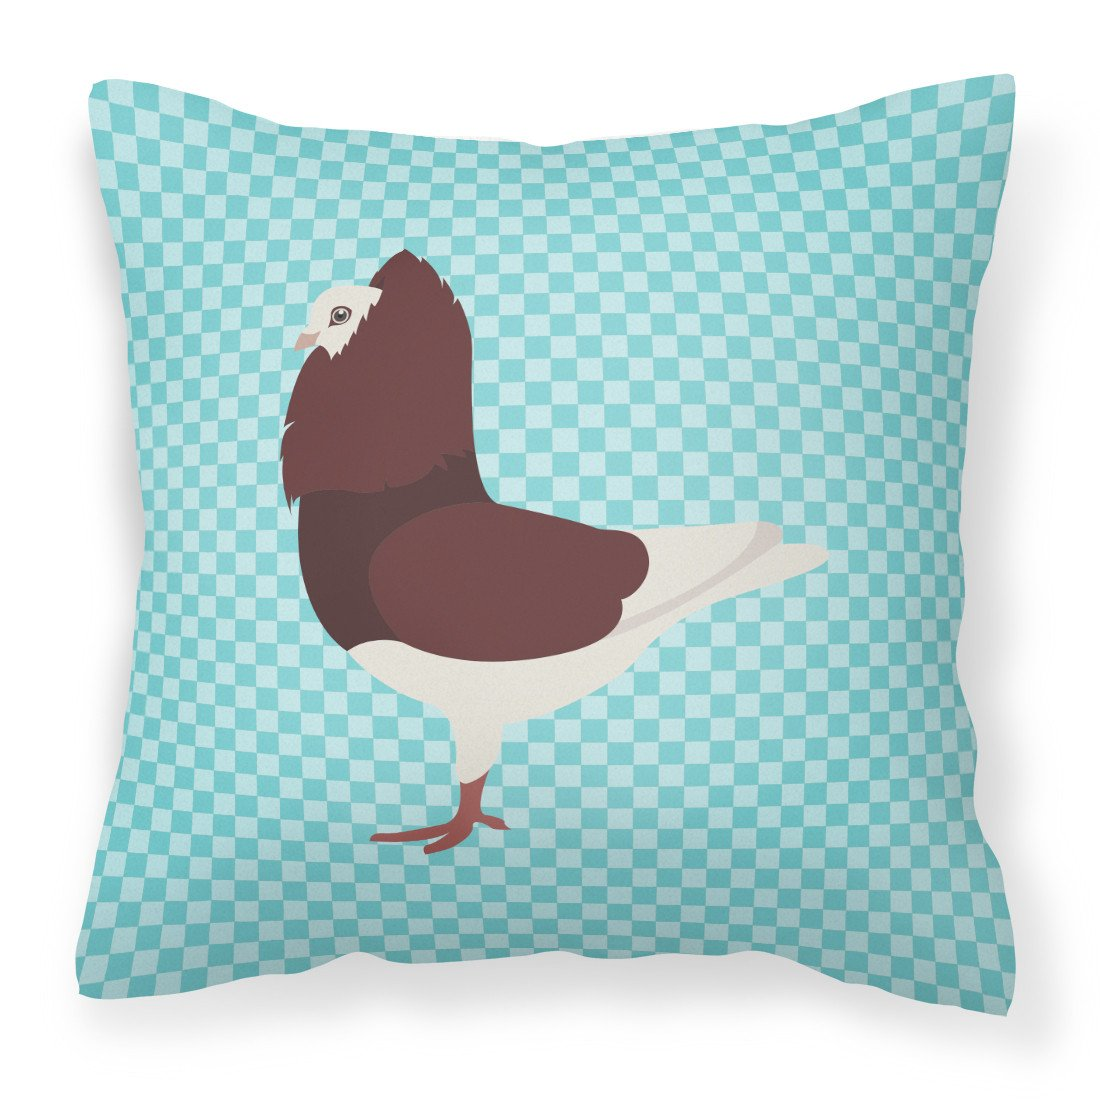 Capuchin Red Pigeon Blue Check Fabric Decorative Pillow BB8122PW1818 by Caroline's Treasures